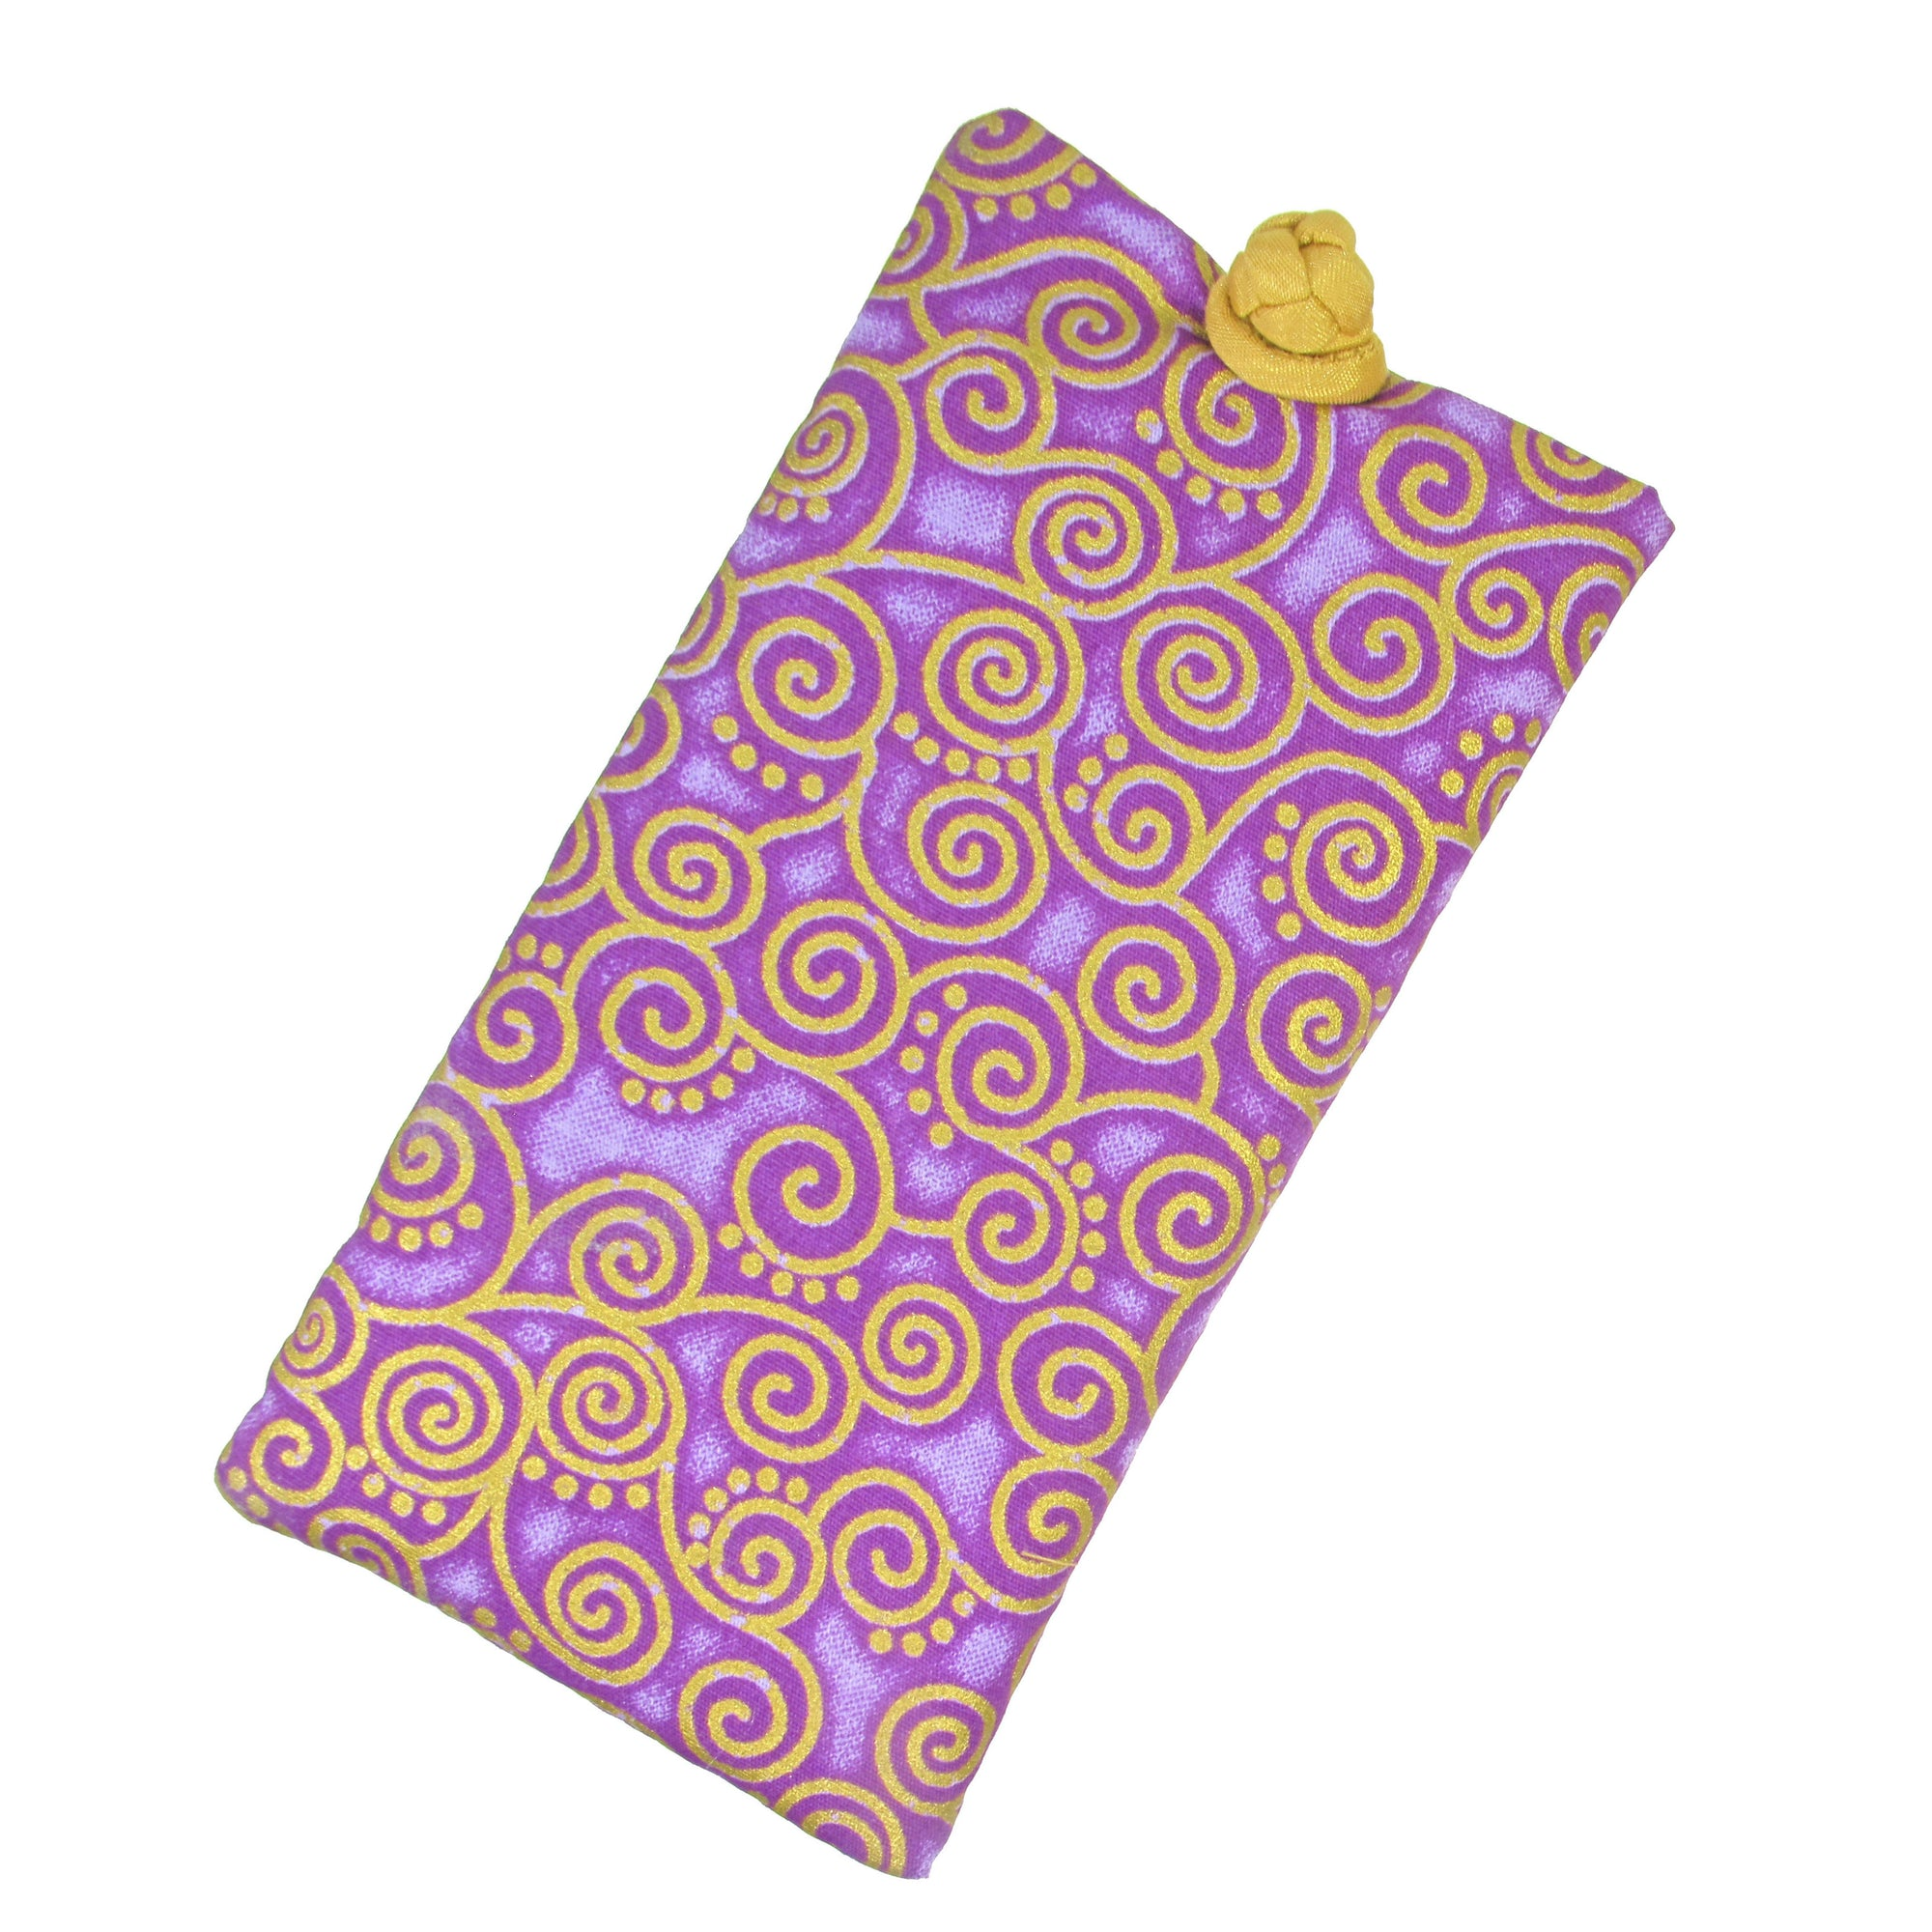 Cotton Soft Eyeglass Case, Purple